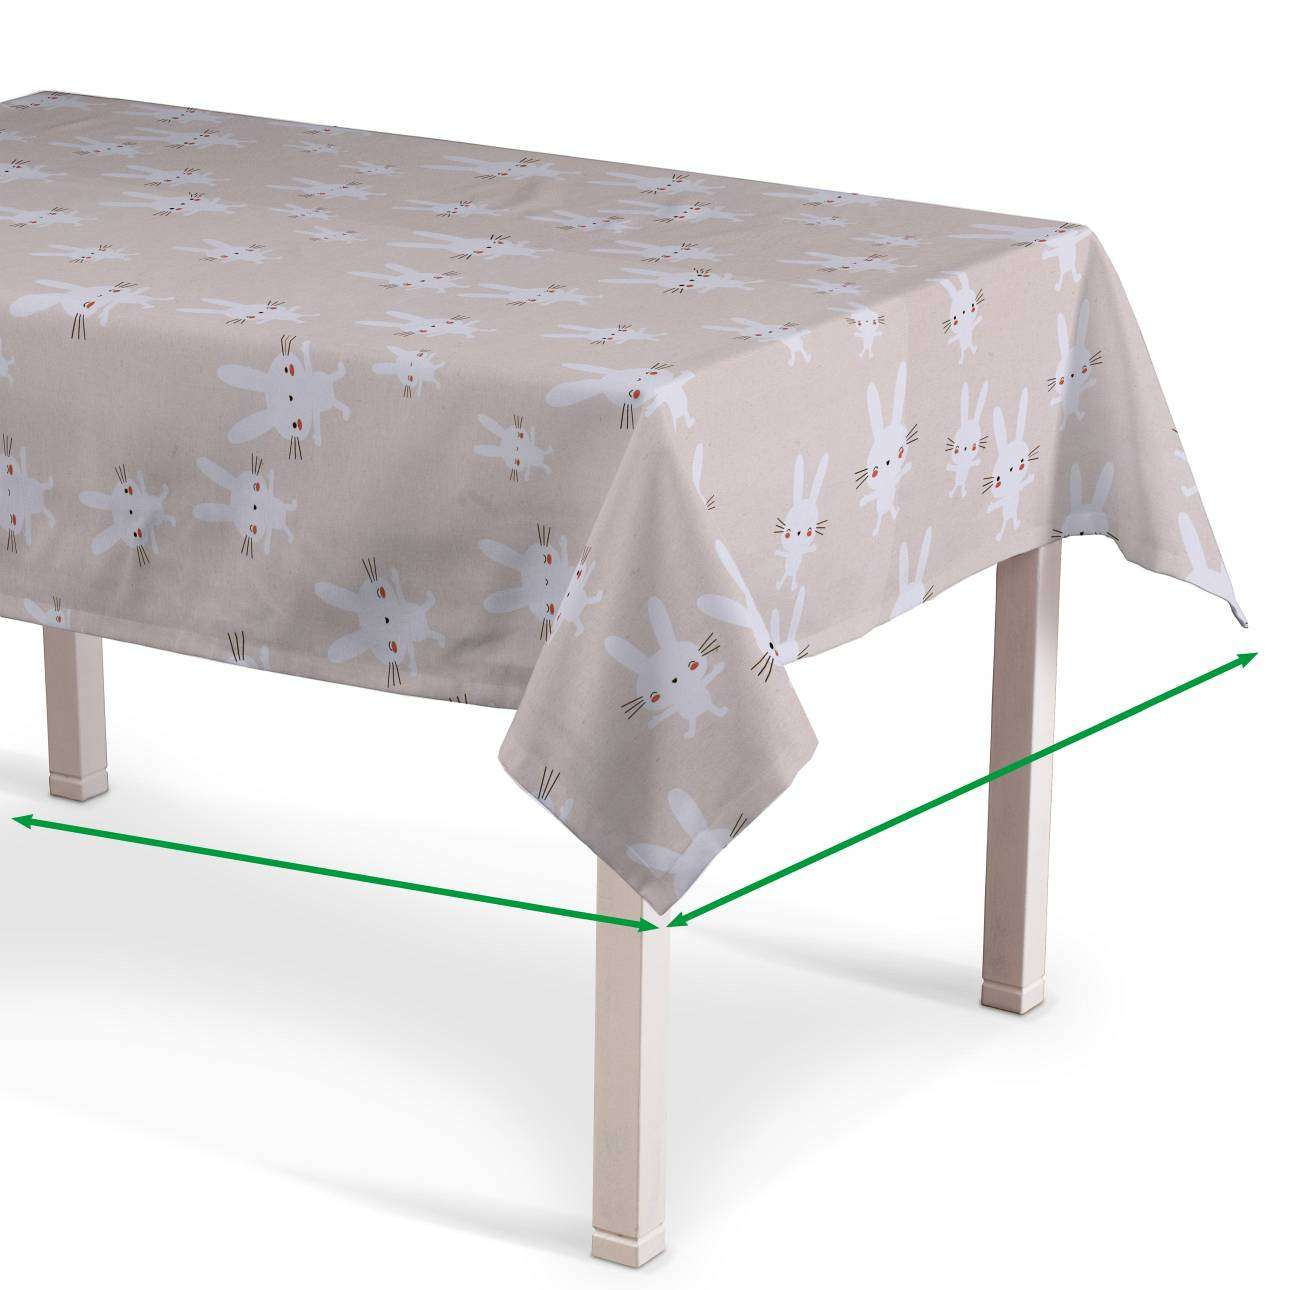 Rectangular tablecloth in collection Apanona, fabric: 151-00